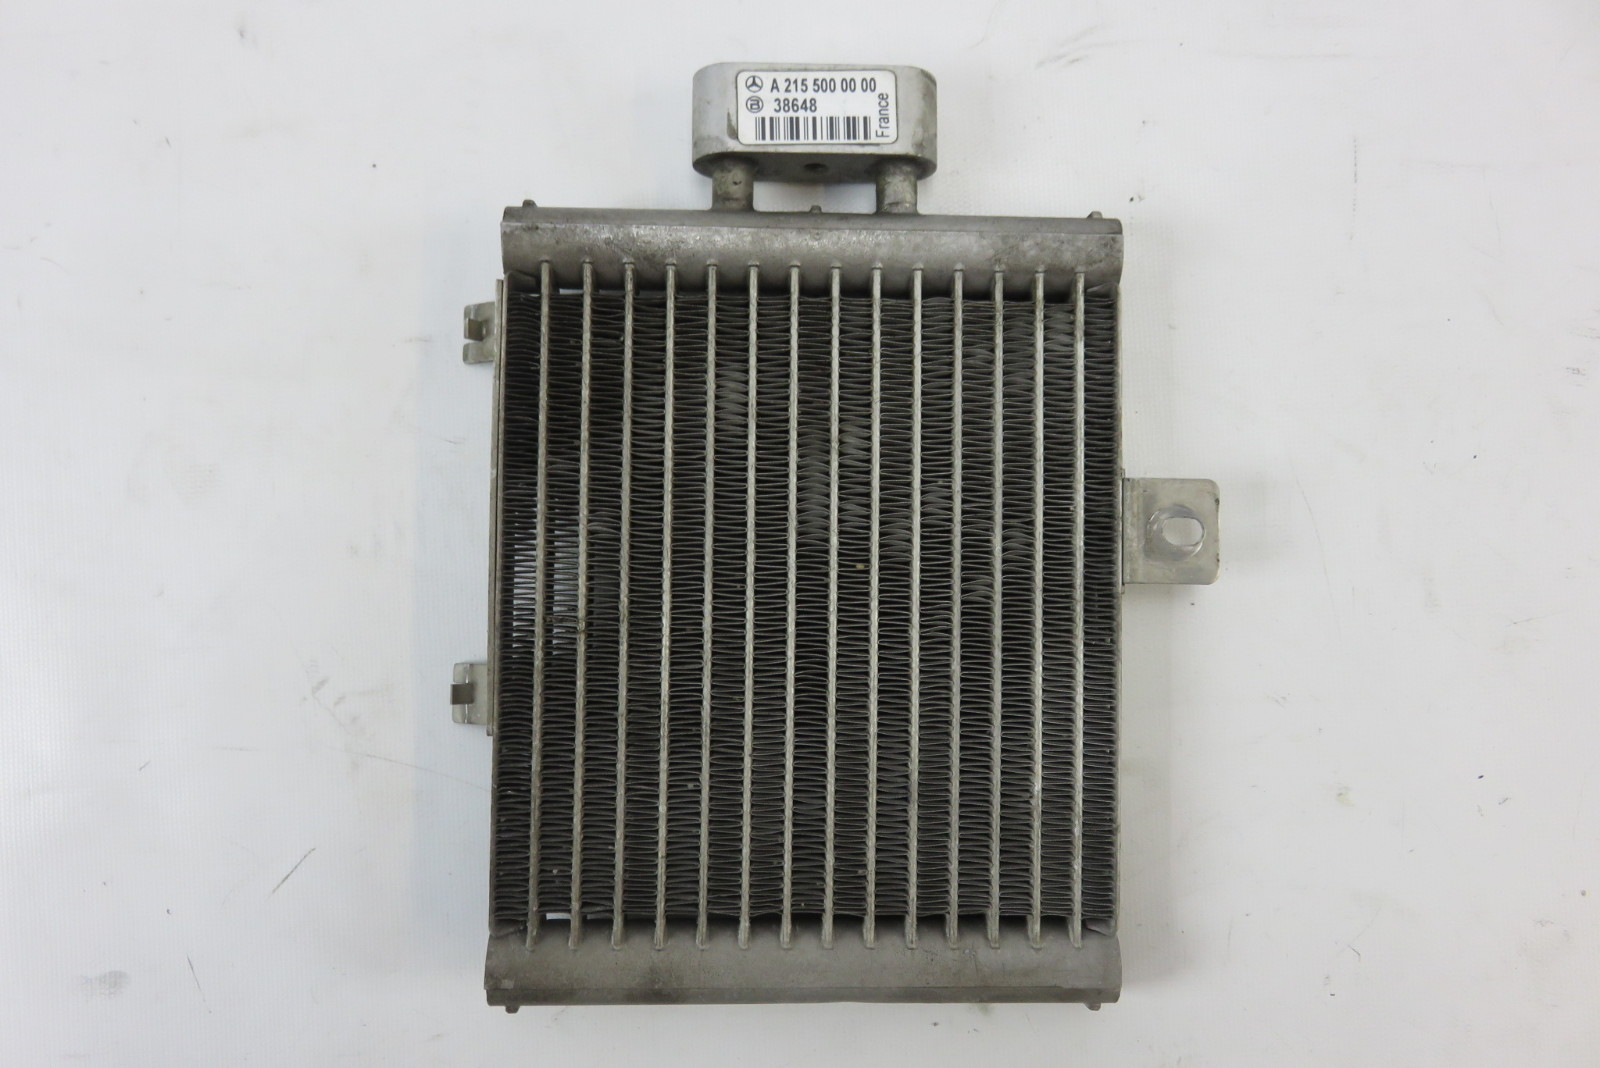 Oil Coolers For Hydraulic Systems : Mercedes r sl oil cooler hydraulic system